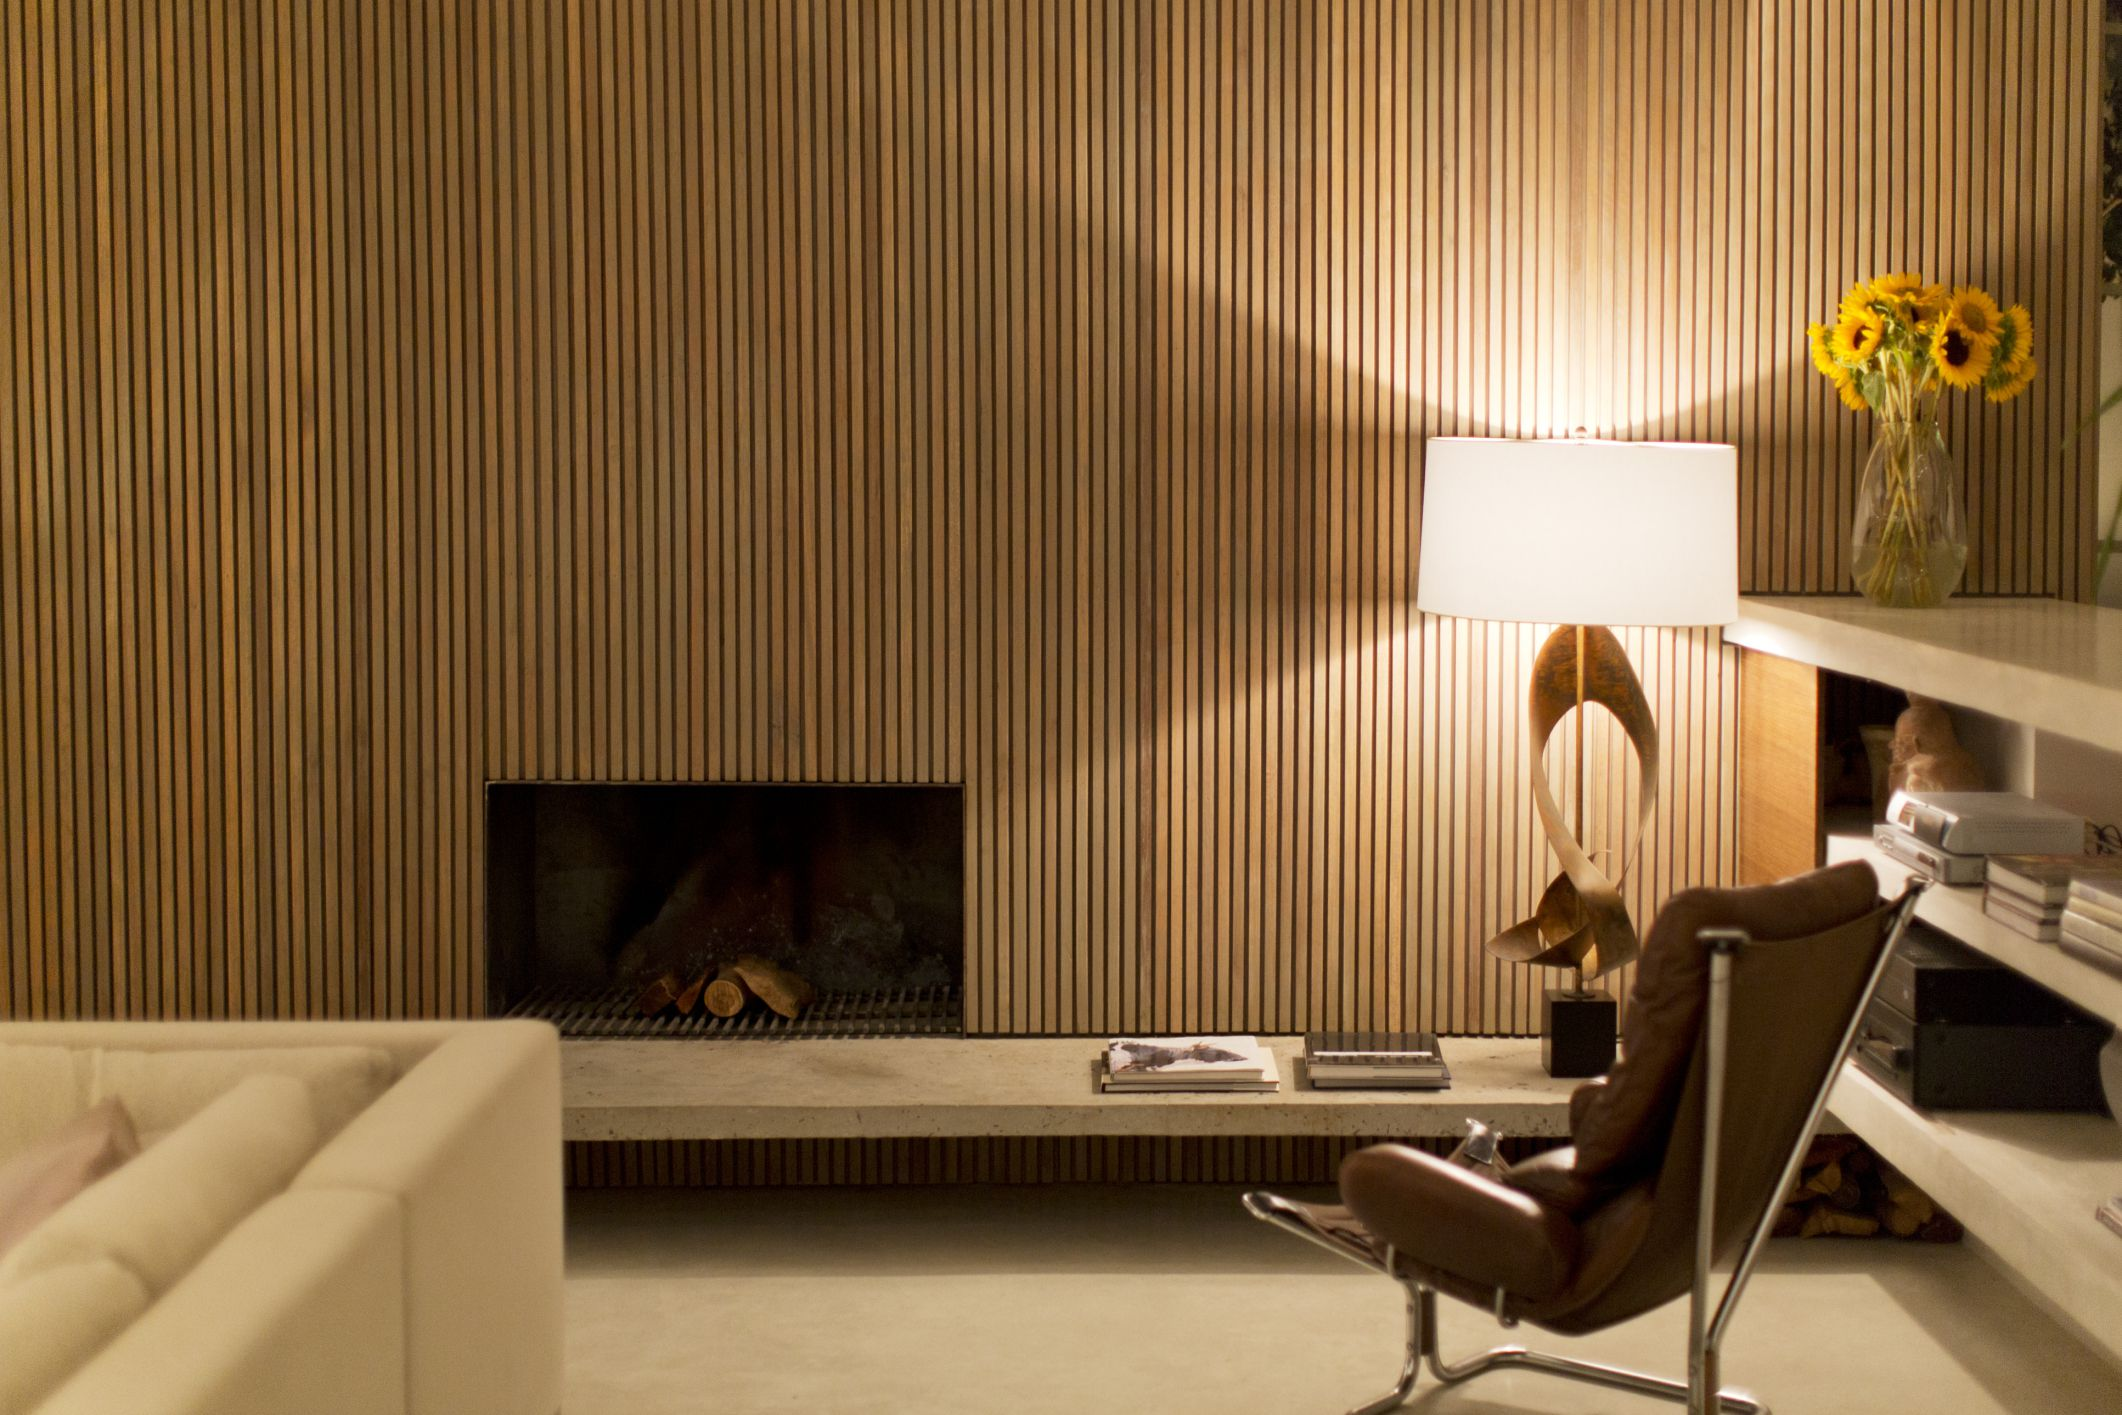 Heres One Alternative To Boring Drywall Wood Wall Paneling